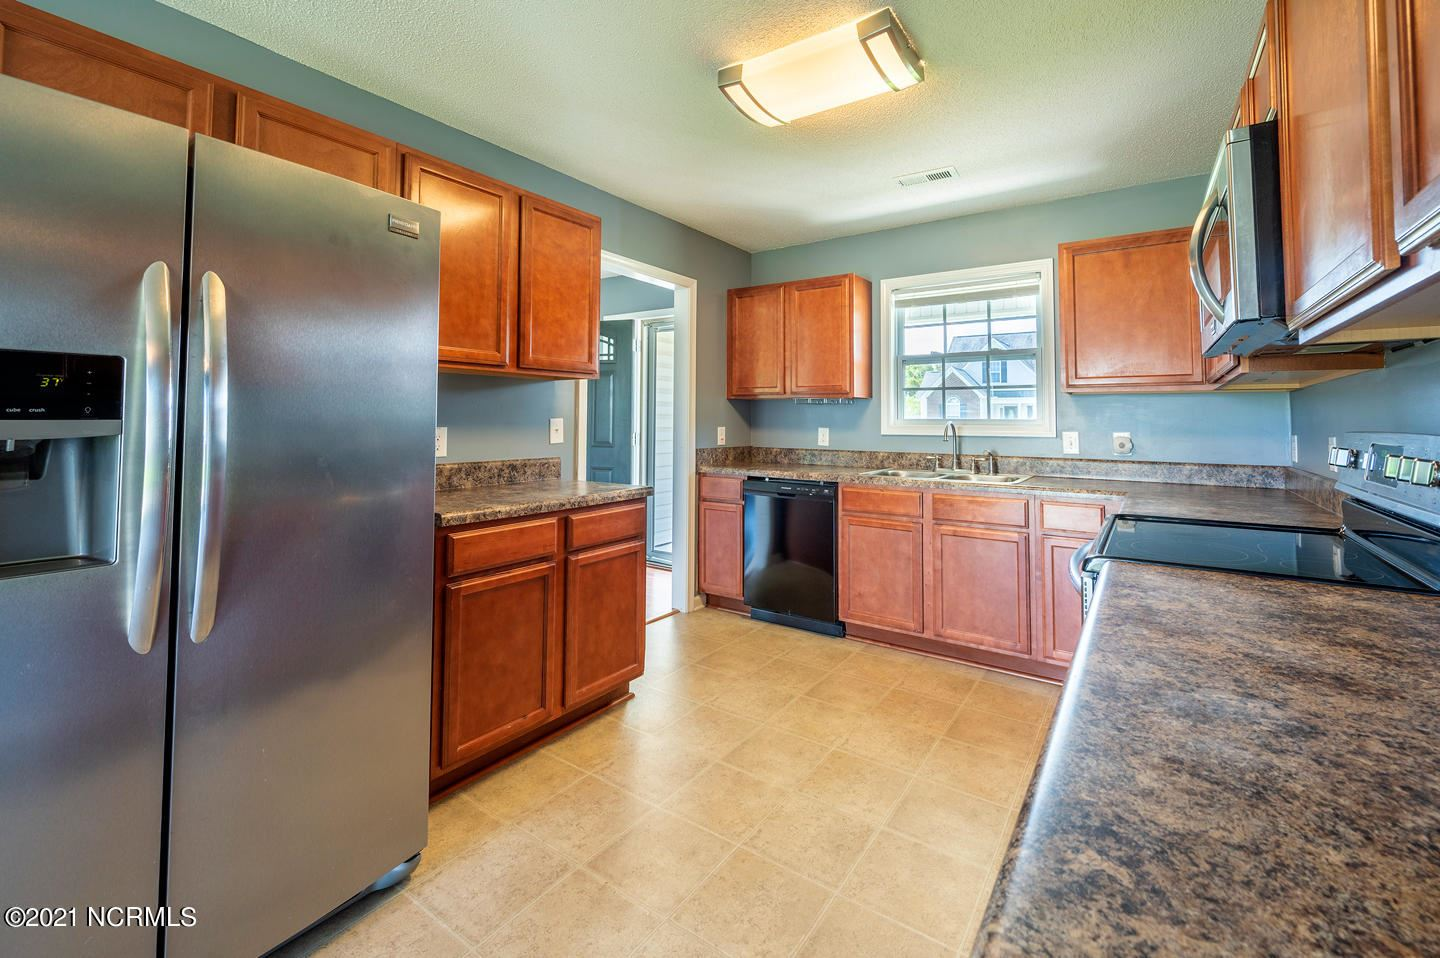 Photo of 2918 Judge Manly Drive, New Bern, NC 28562 (MLS # 100280700)